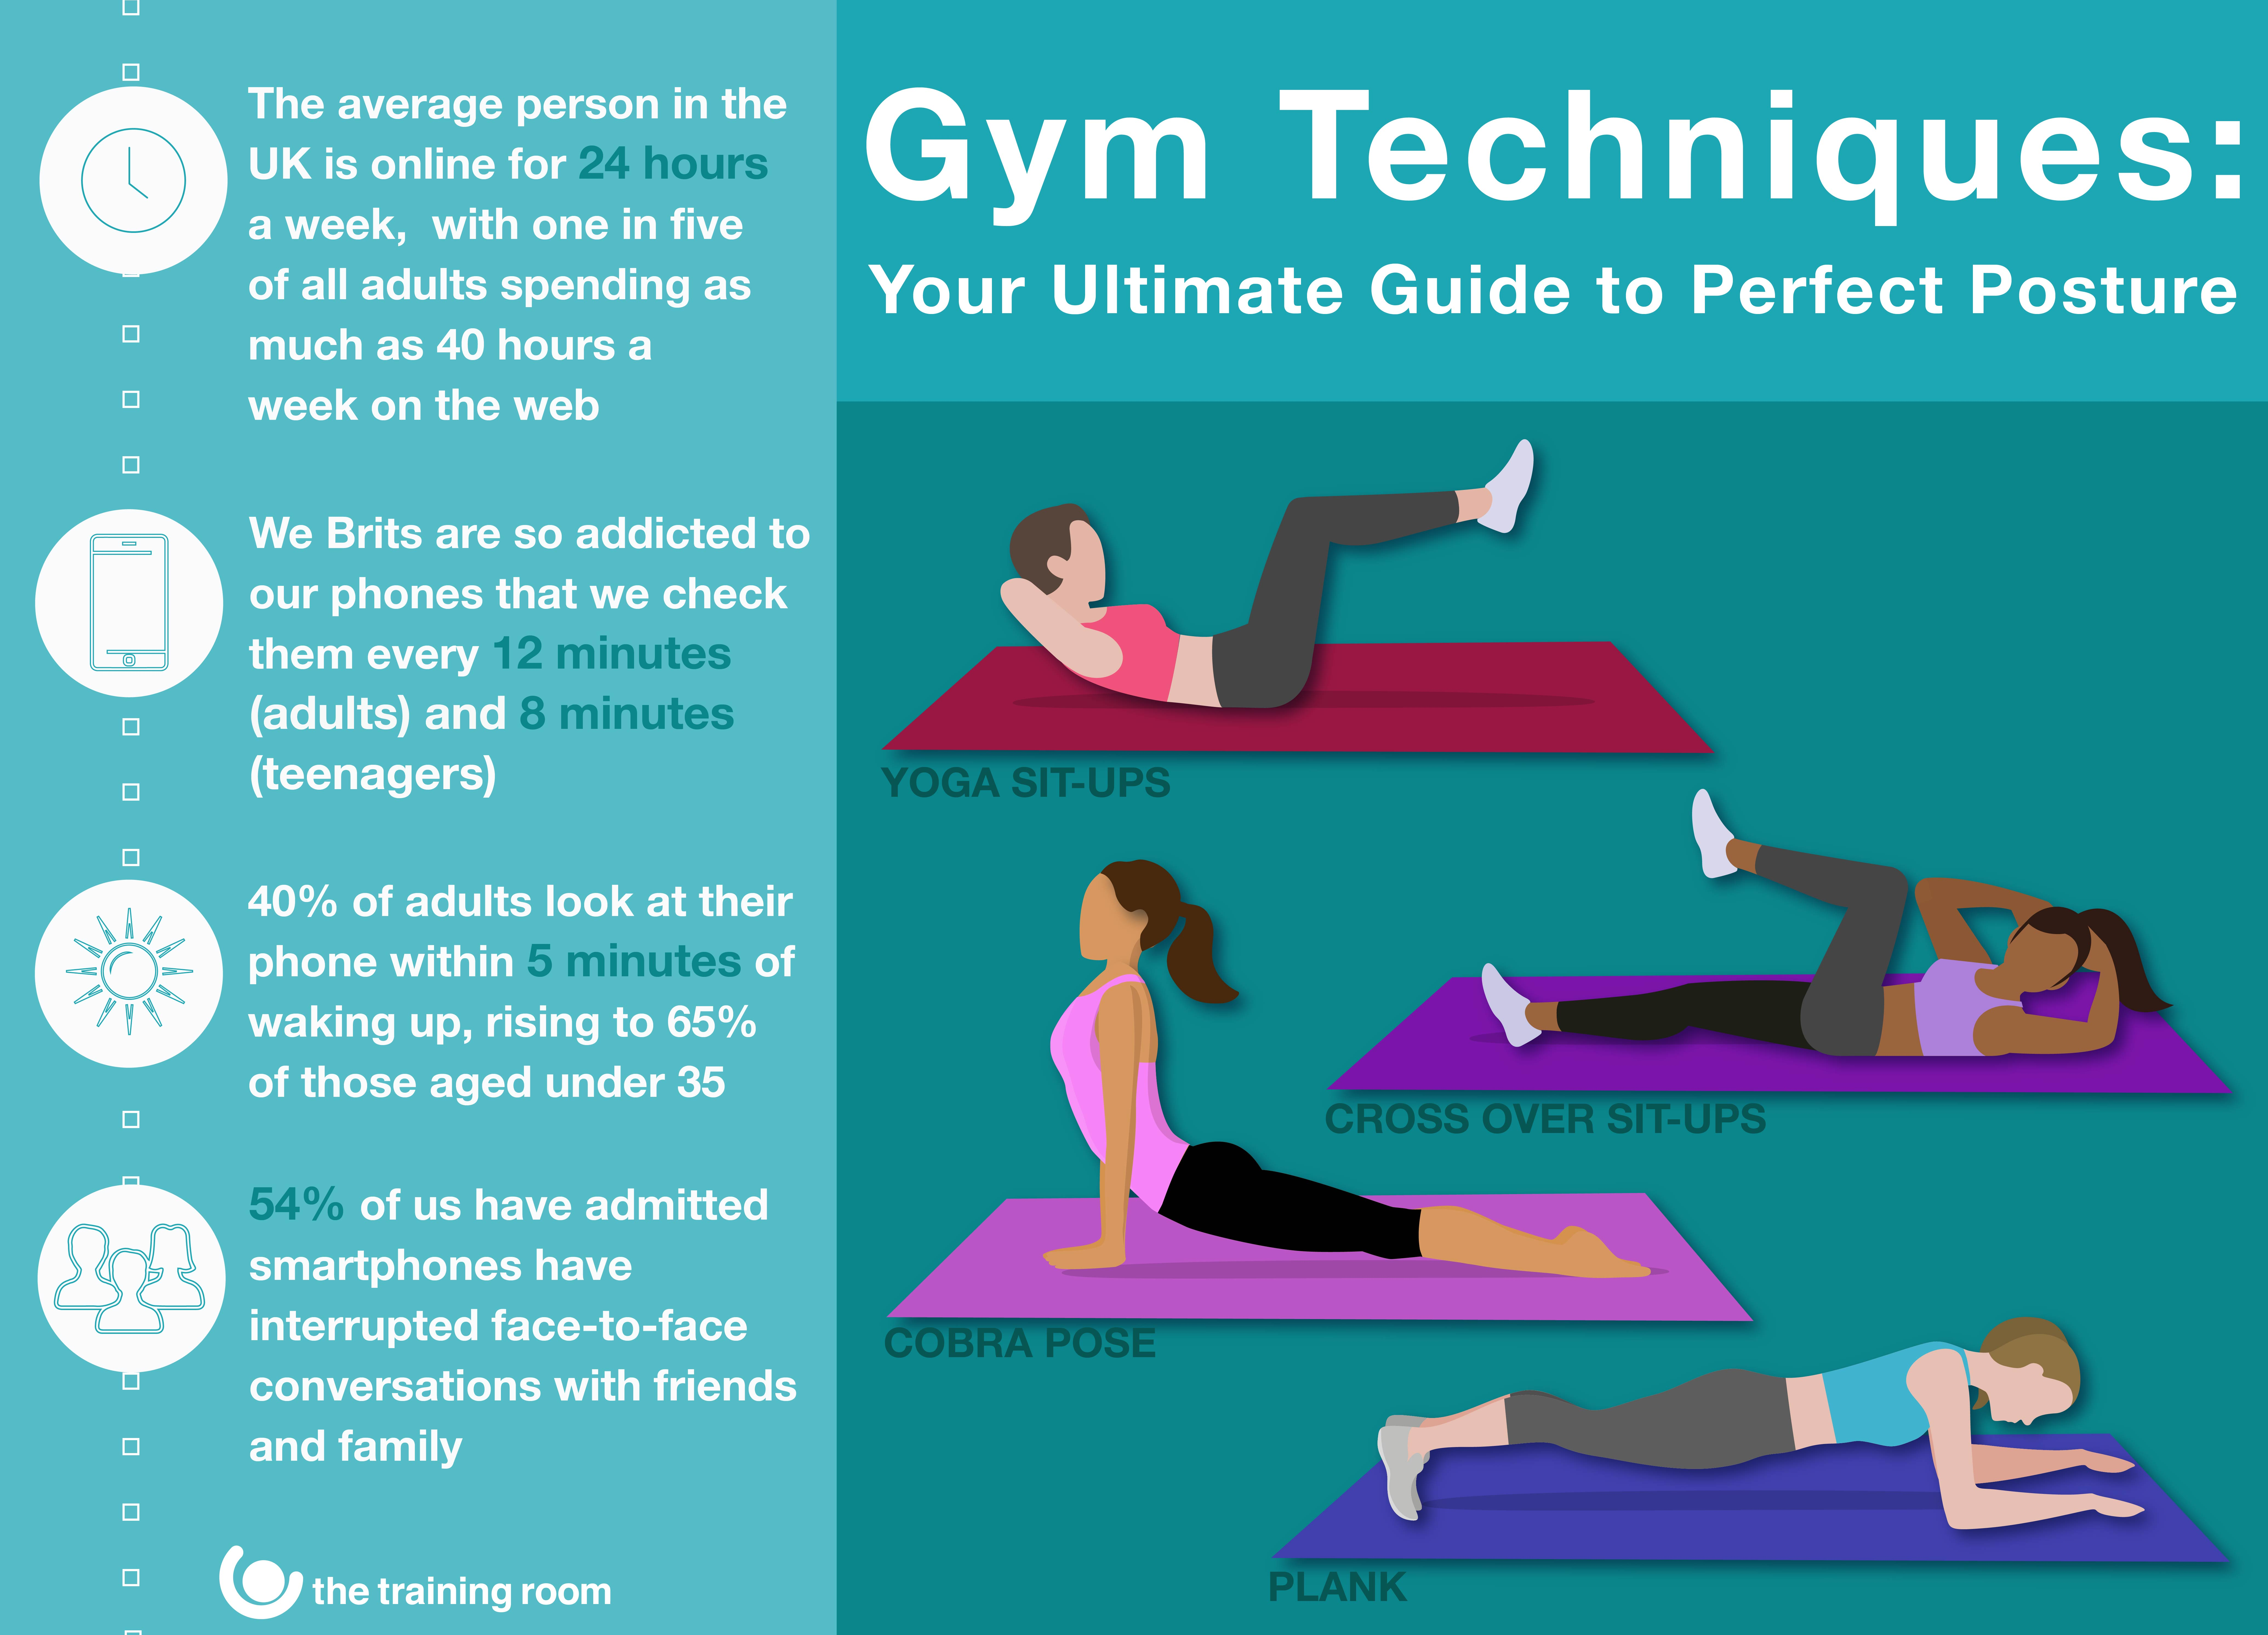 Gym-Techniques-Your-Ultimate-Guide-to-Perfect-Posture-main-V2-01-2.jpg